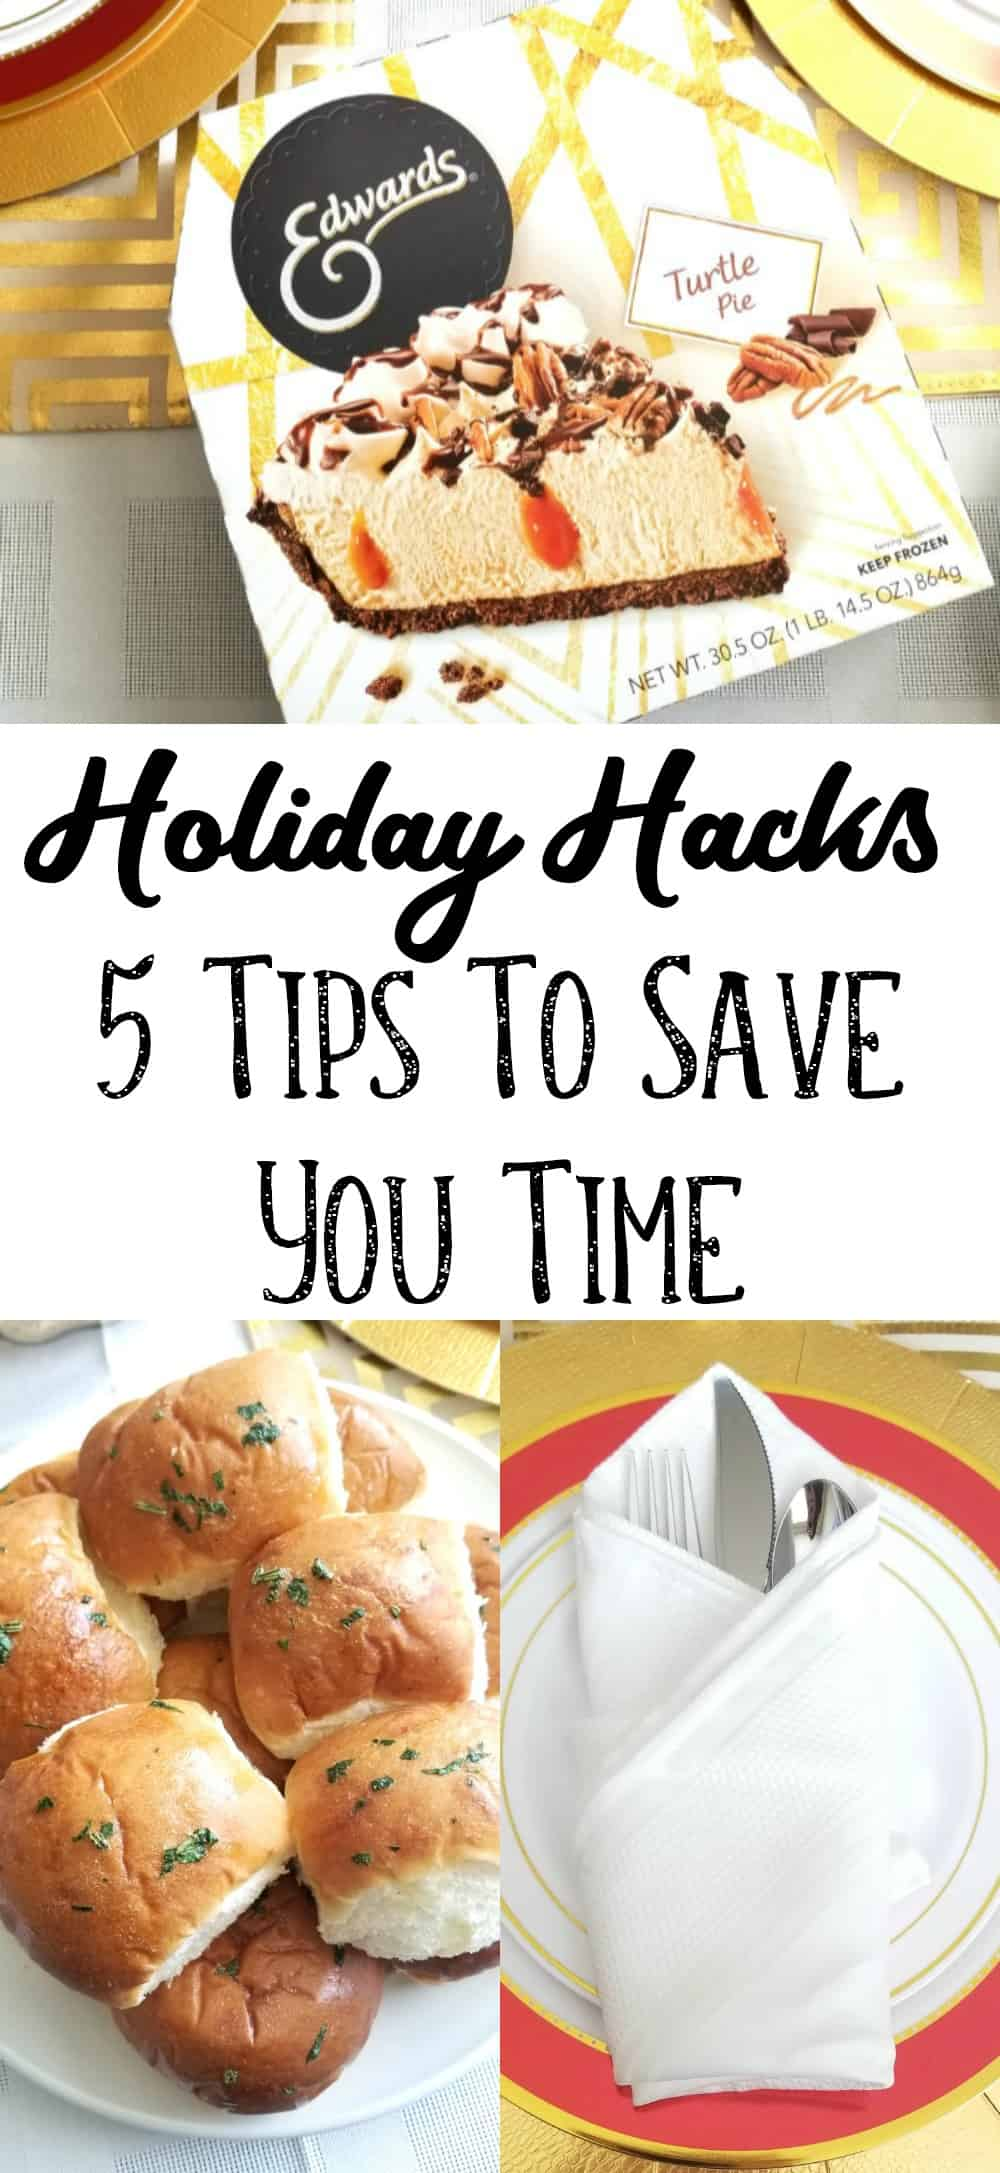 5 Holiday Hacks That Save You Time